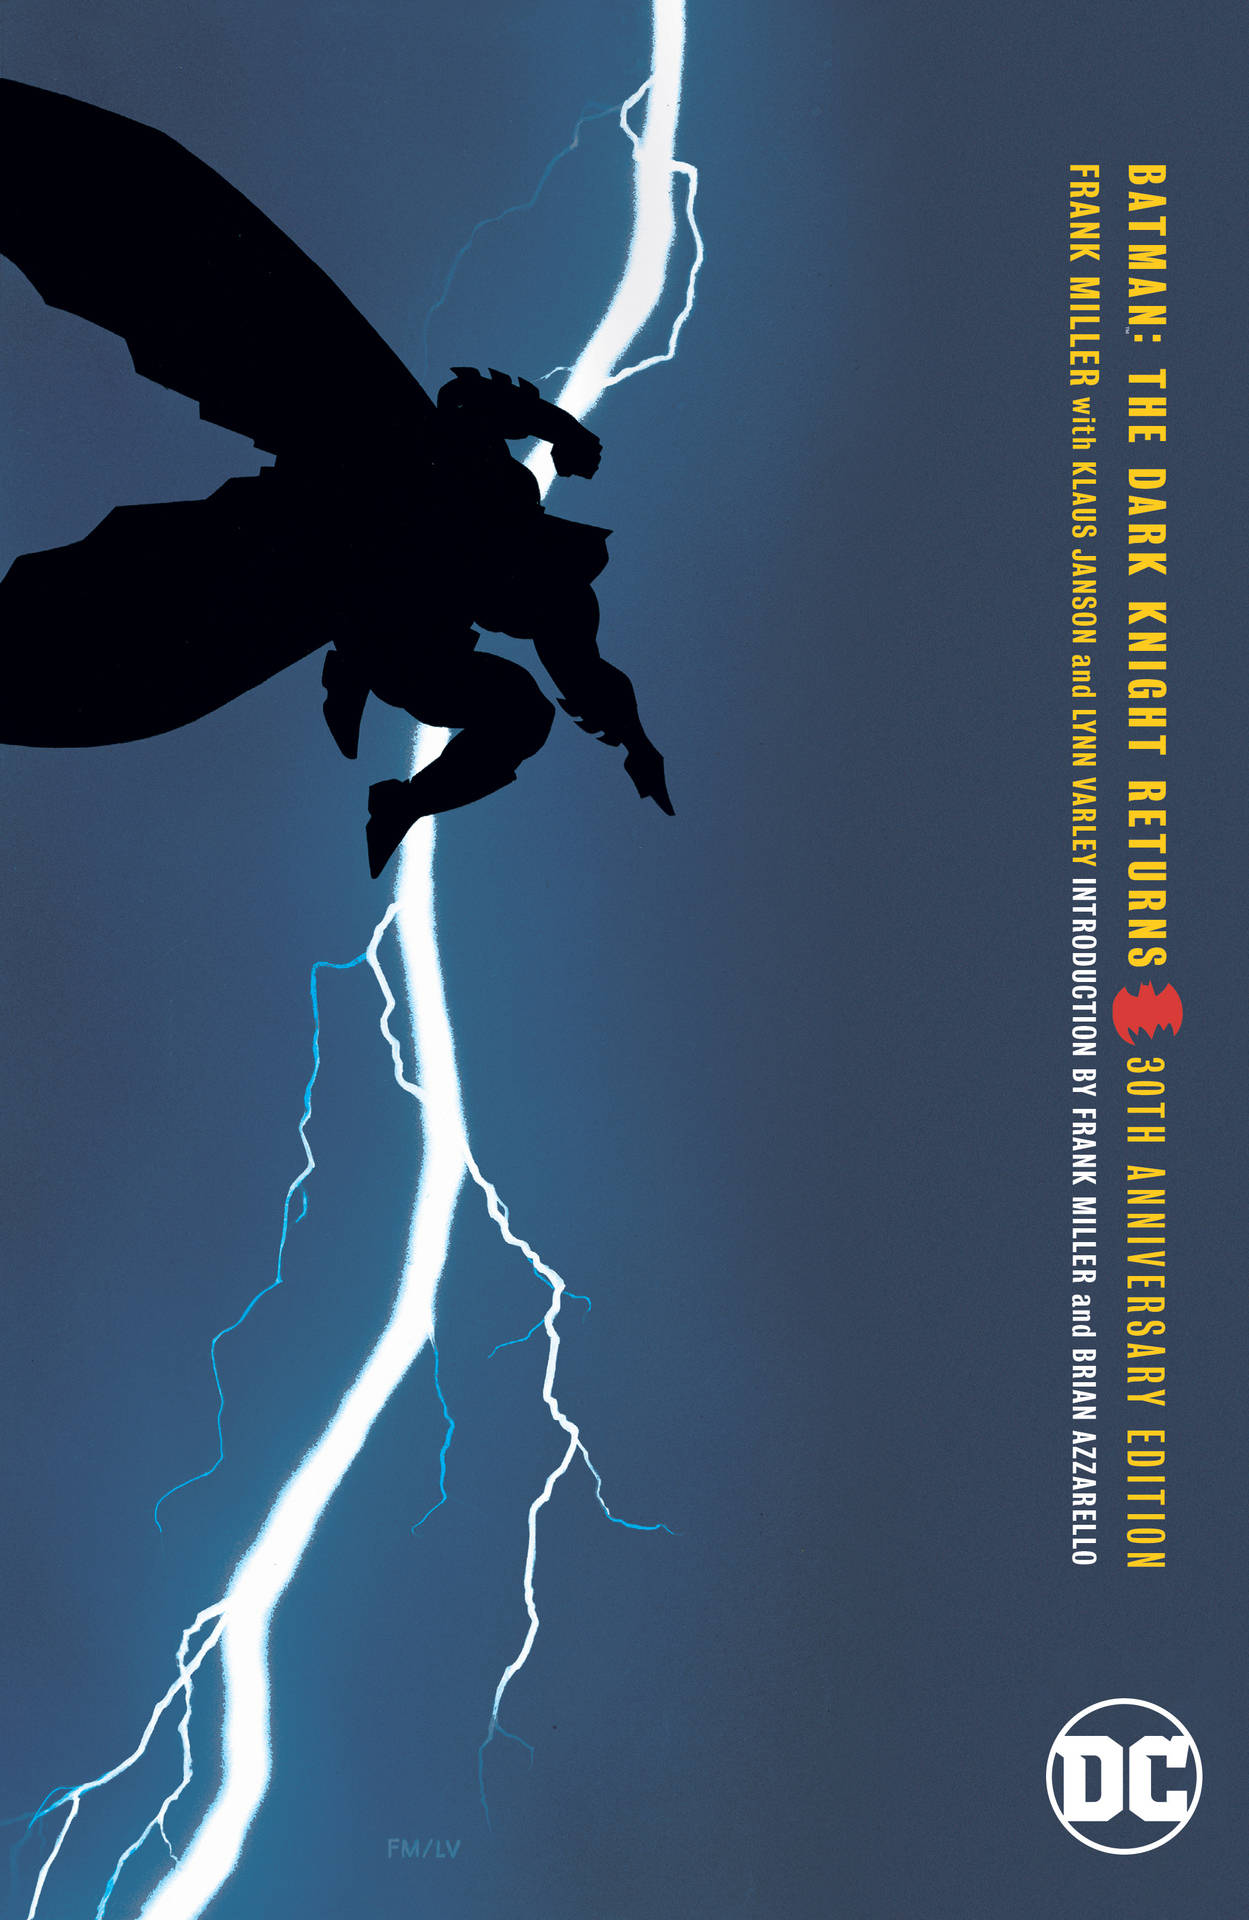 frank-miller-en-the-dark-knight-returns.